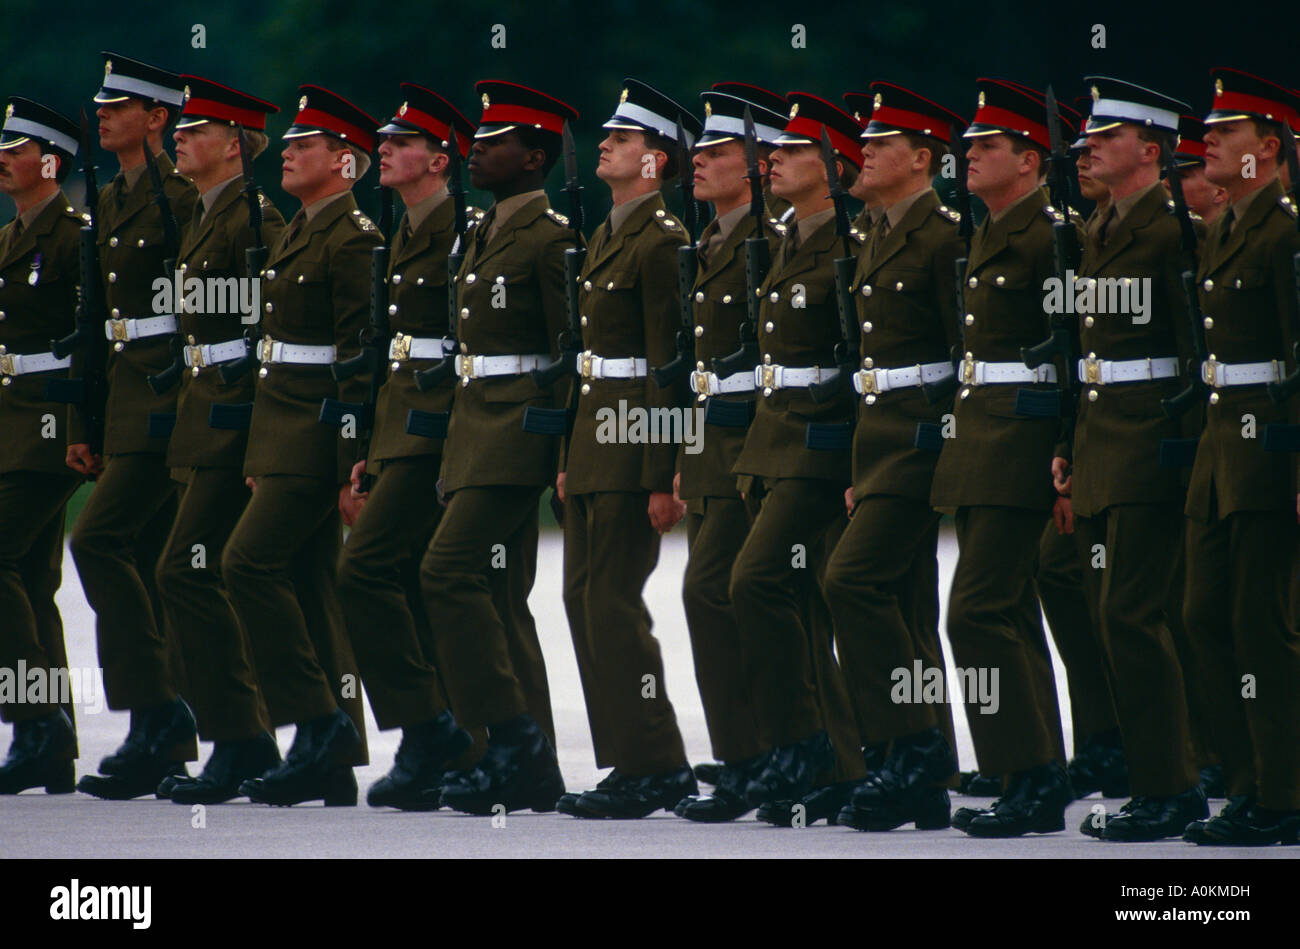 Richard Stokes, the first black guardsman in the British Army, at his passing out parade in Pirbright, Surrey 1988 - Stock Image